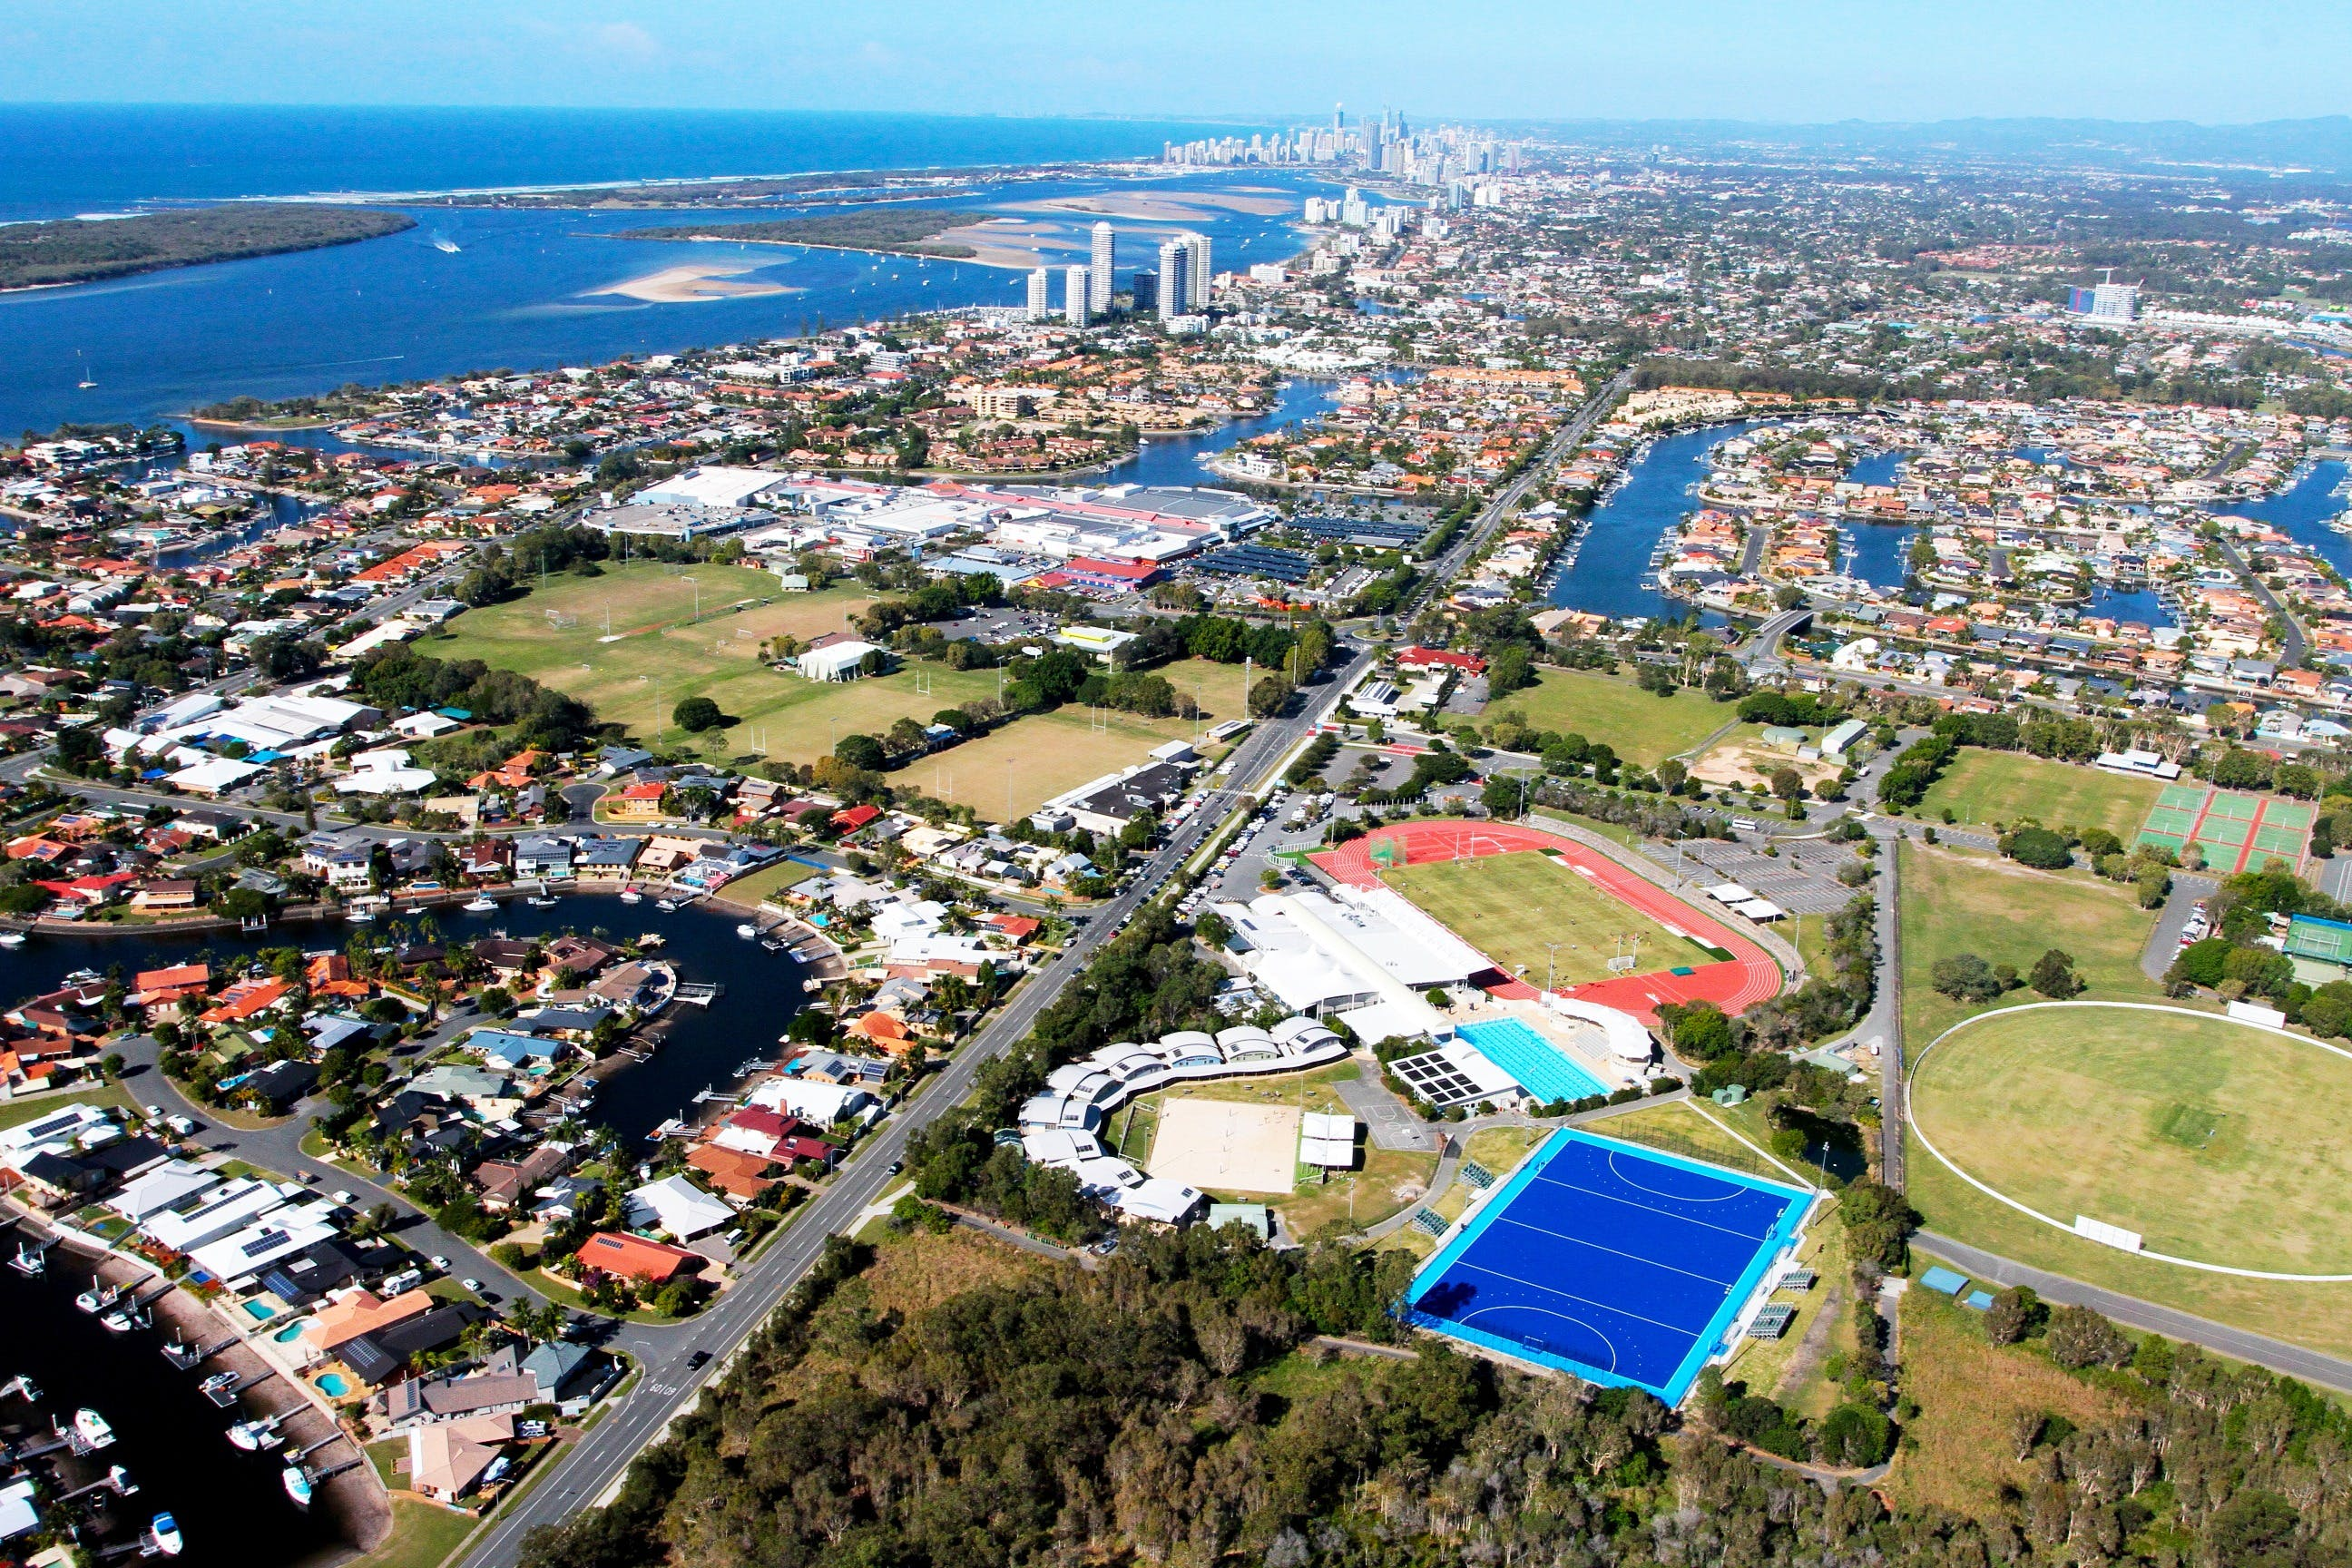 Gold Coast Triathlon Training Logo and Images